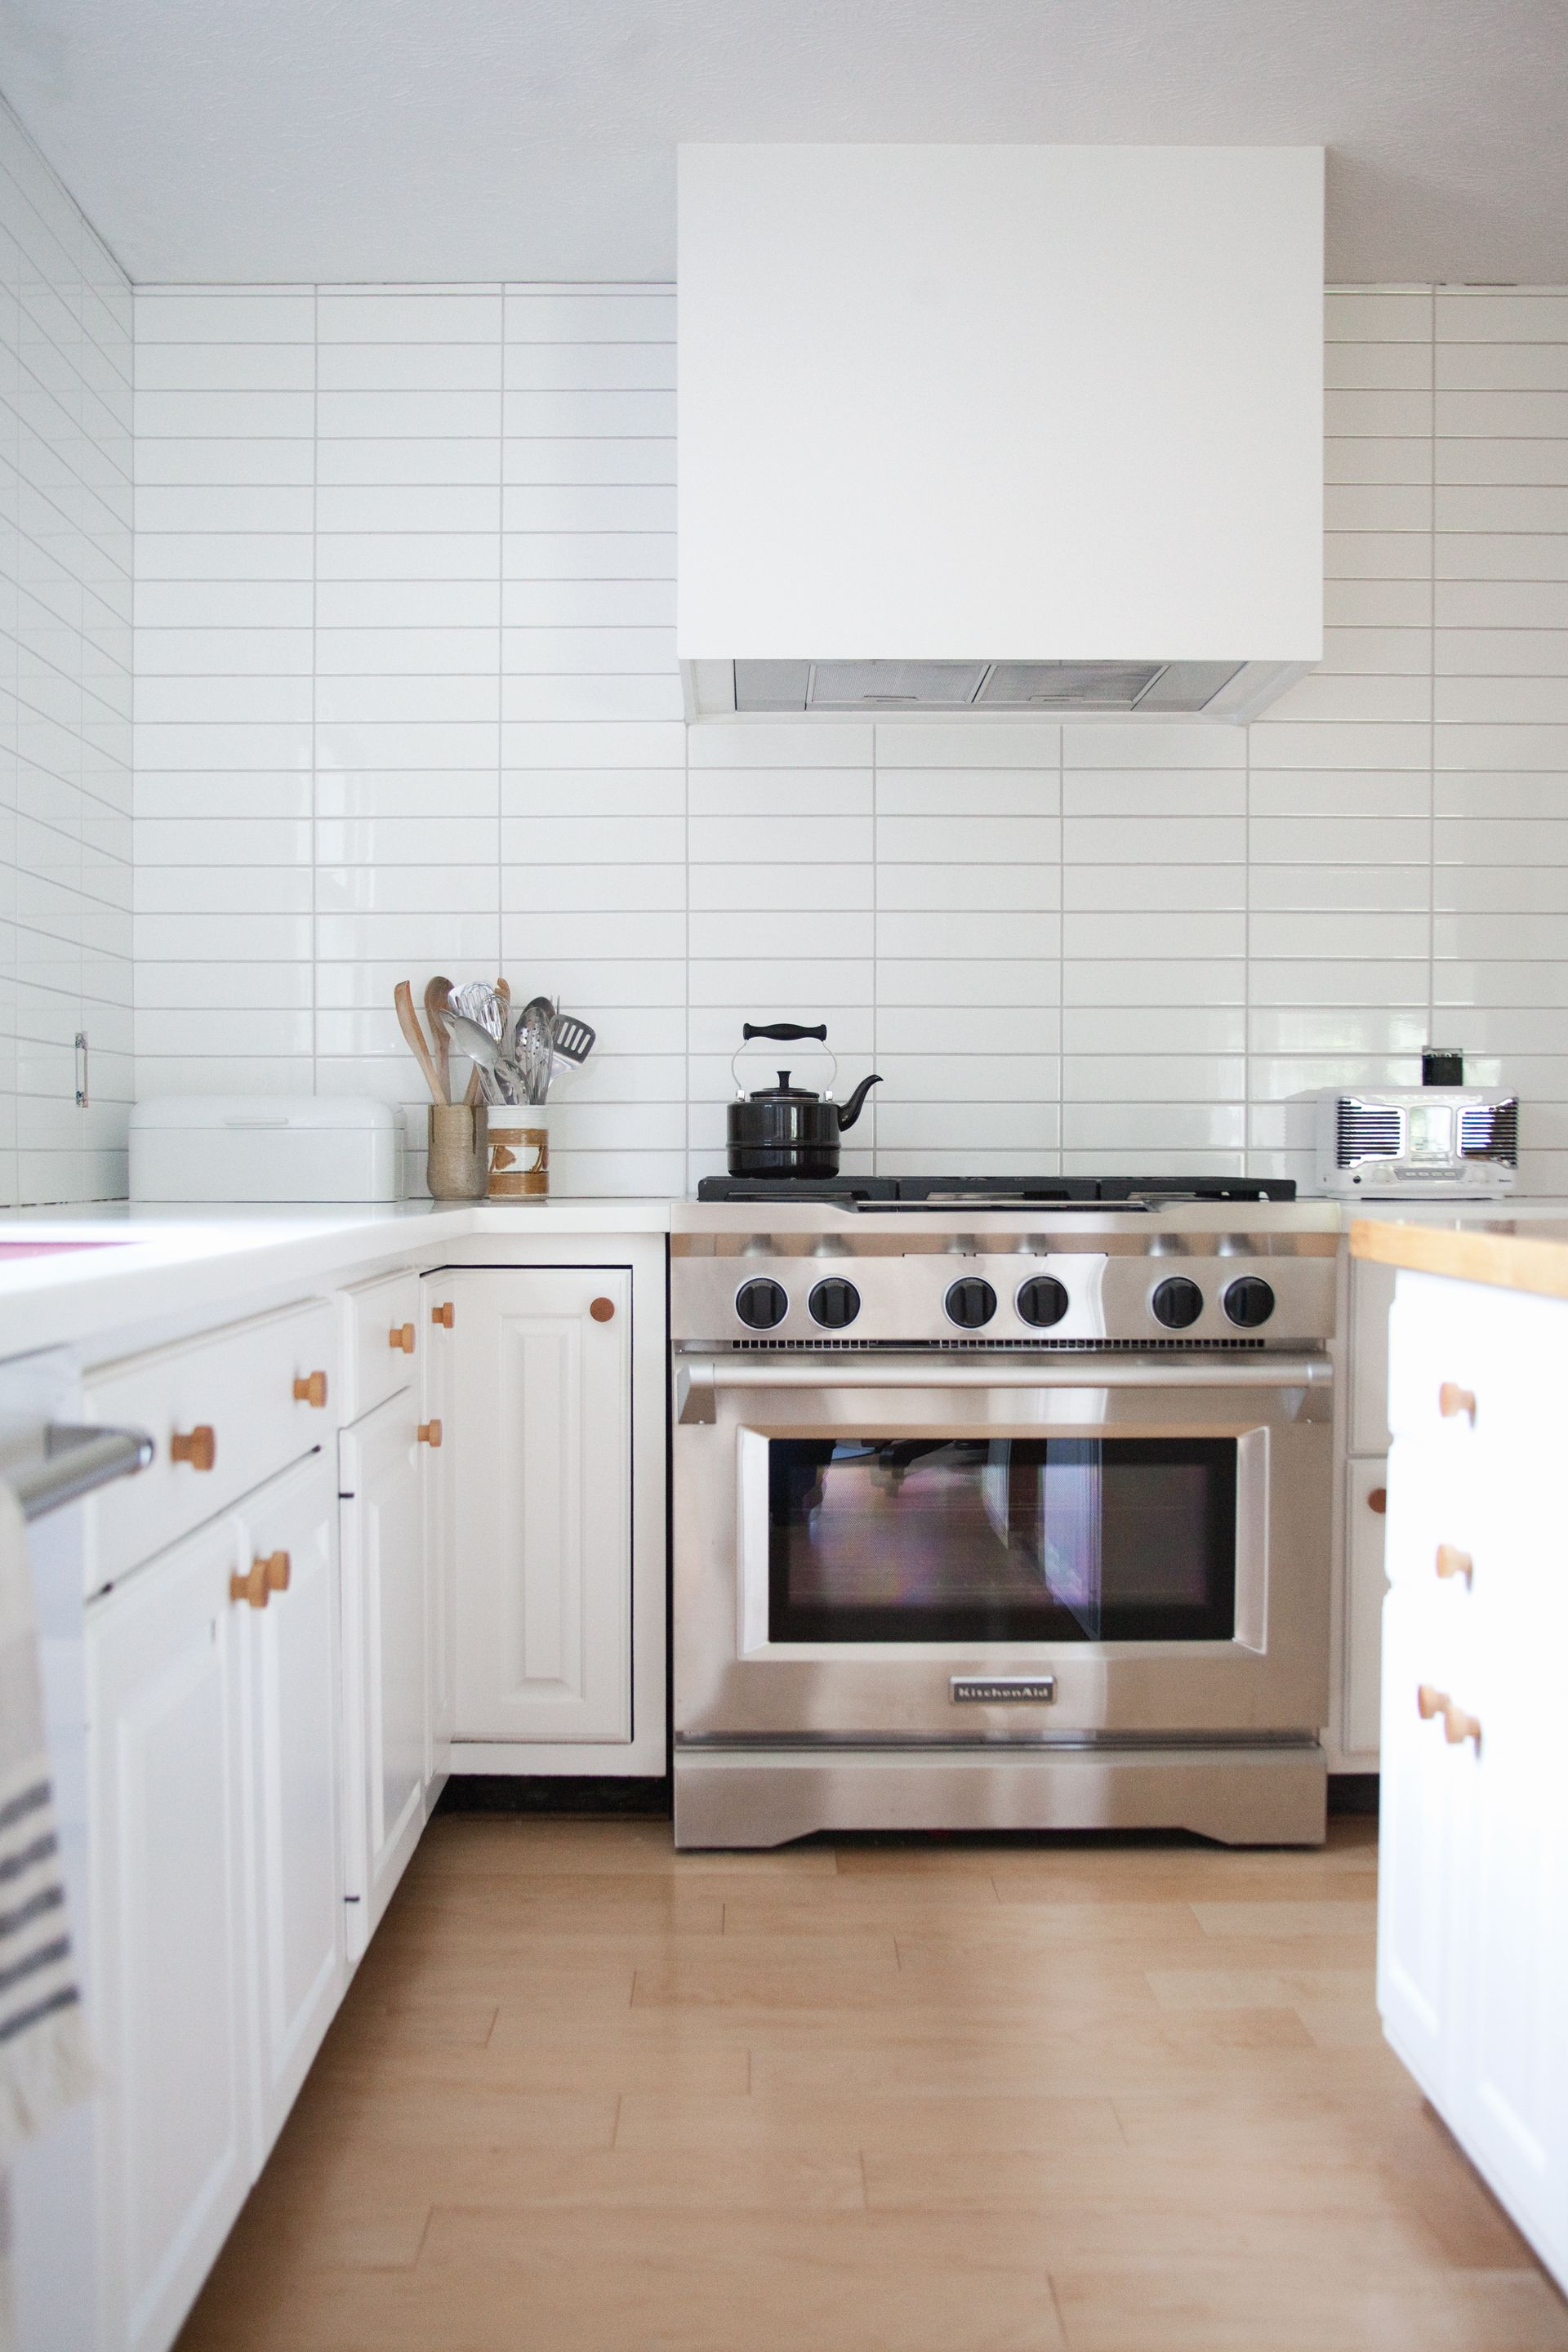 Painting Cabinets With Chalk Paint Pros Cons A Beautiful Mess Chalk Paint Kitchen Cabinets Painting Kitchen Cabinets Kitchen Cabinets